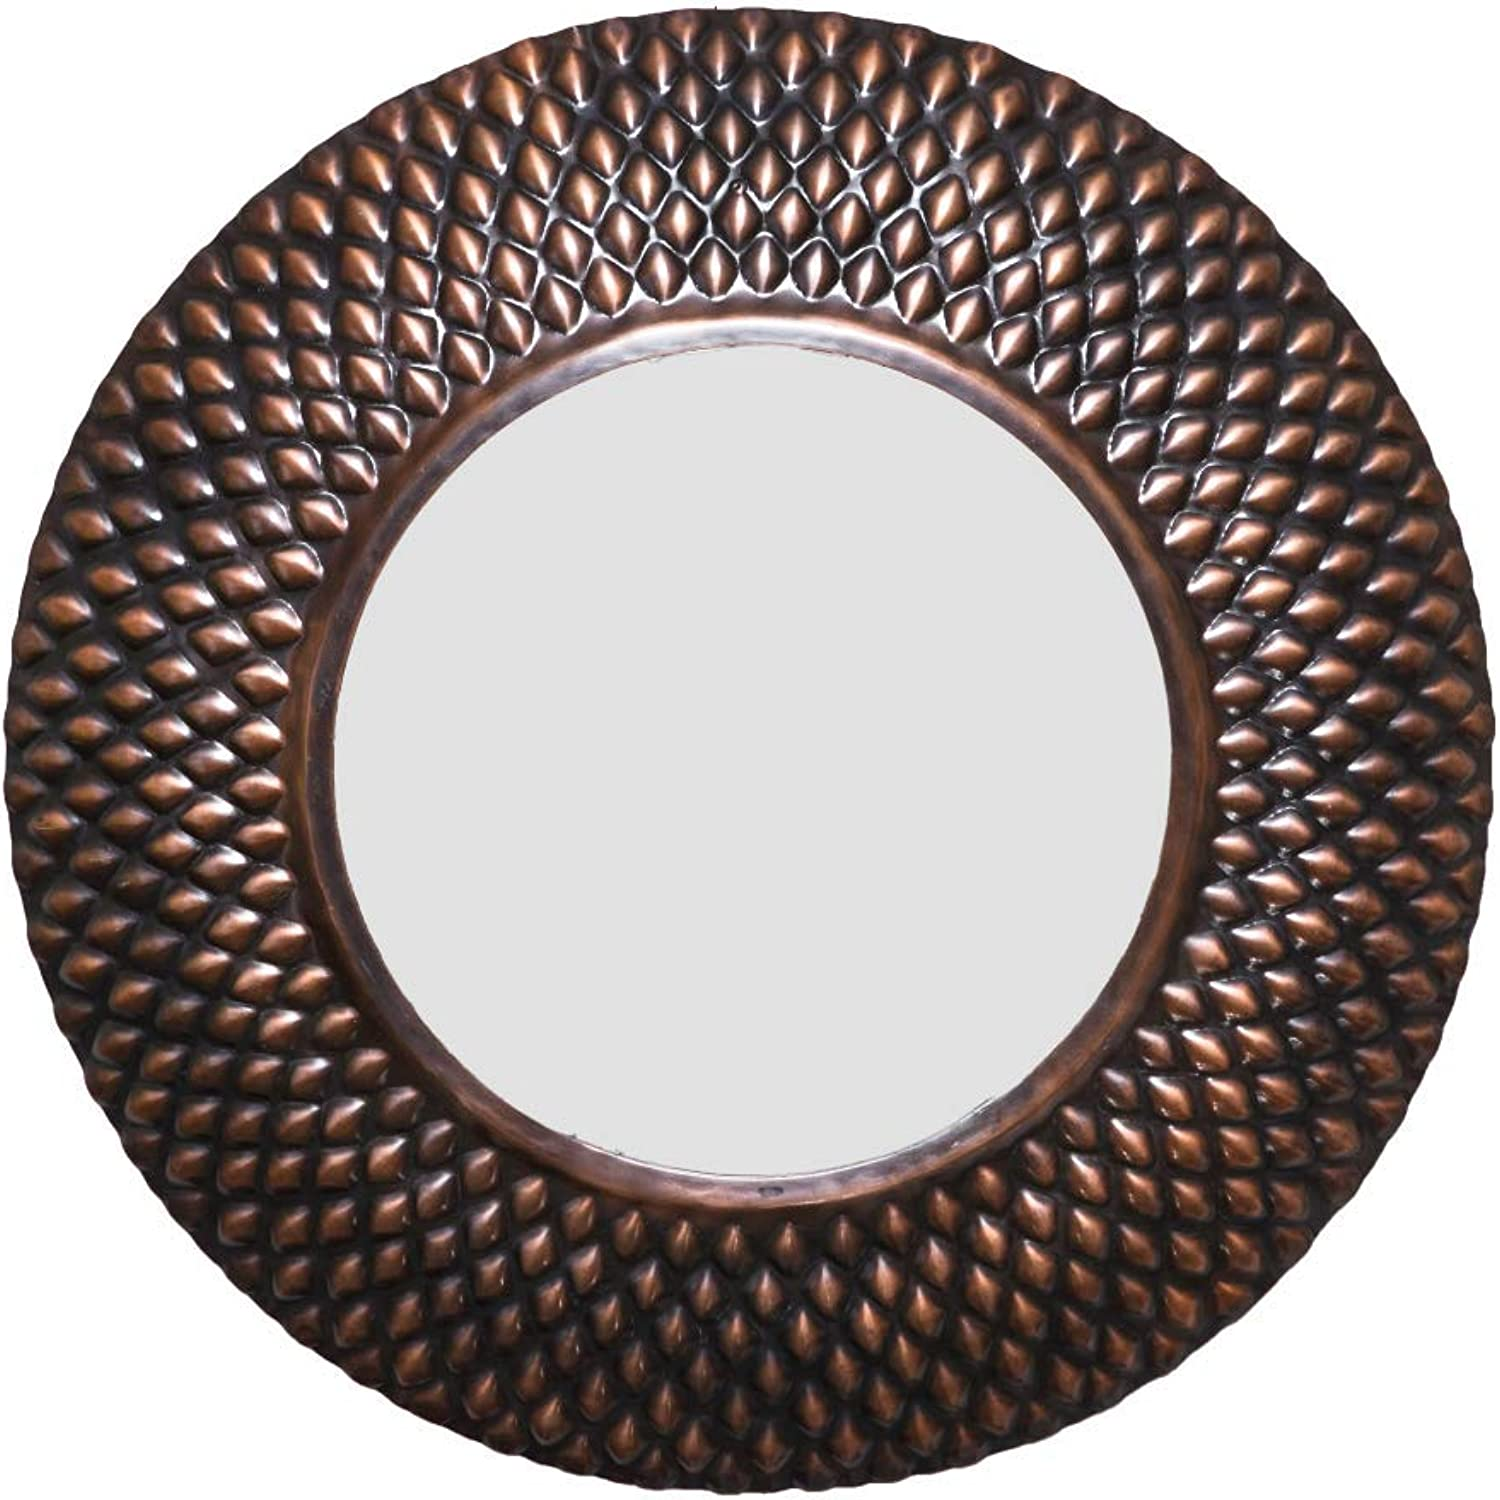 Pangolin Large 66cm Round Wall Mirror - Copper